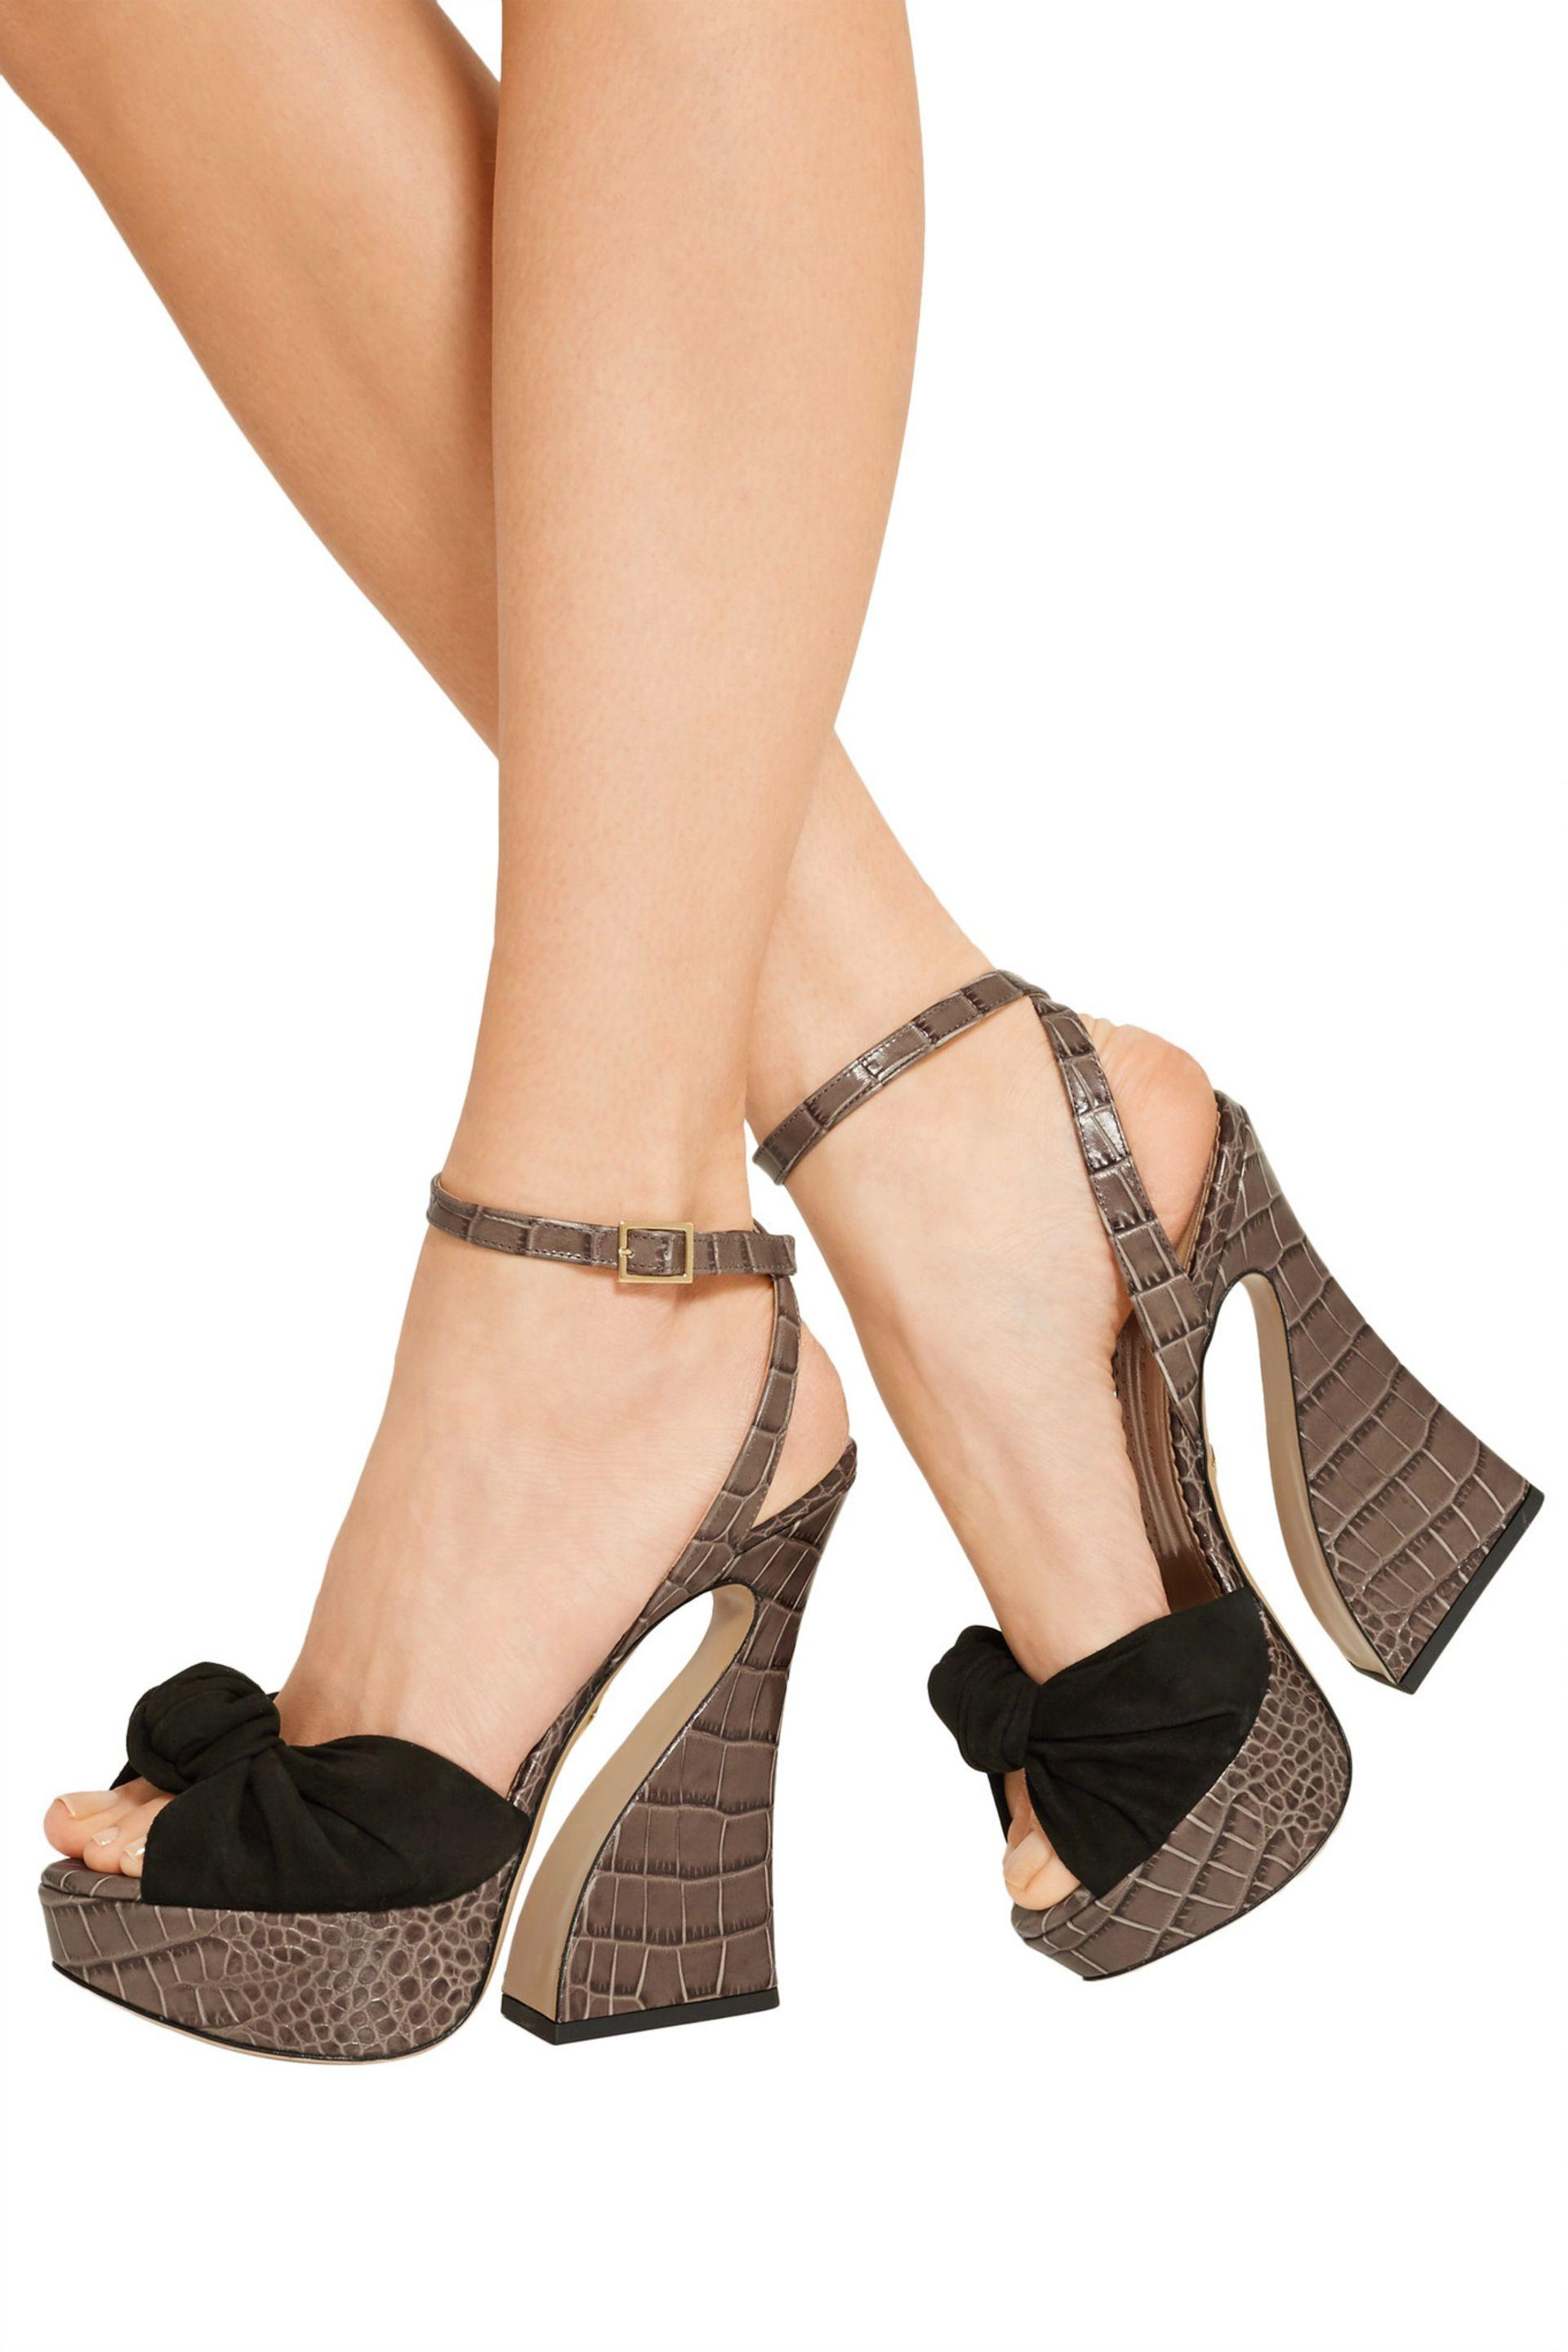 Clearance Get Authentic Low Price Fee Shipping Vreeland croc print sandal Charlotte Olympia Professional Cheap Price 6d6lPRcg